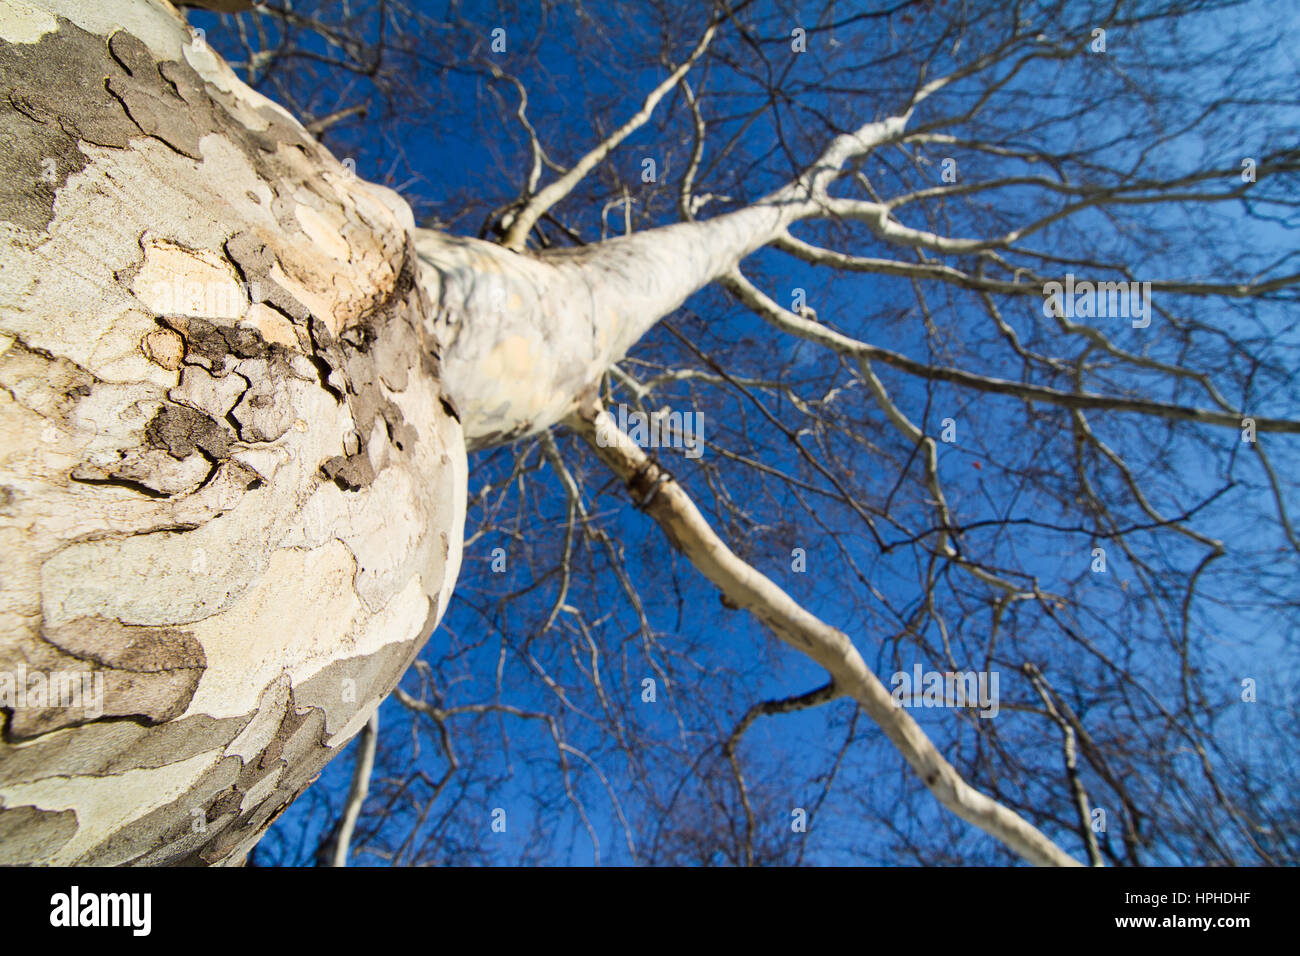 bottom to top horizontal view of a white tree trunk and branches with no leafs against a blue sky background - Stock Image